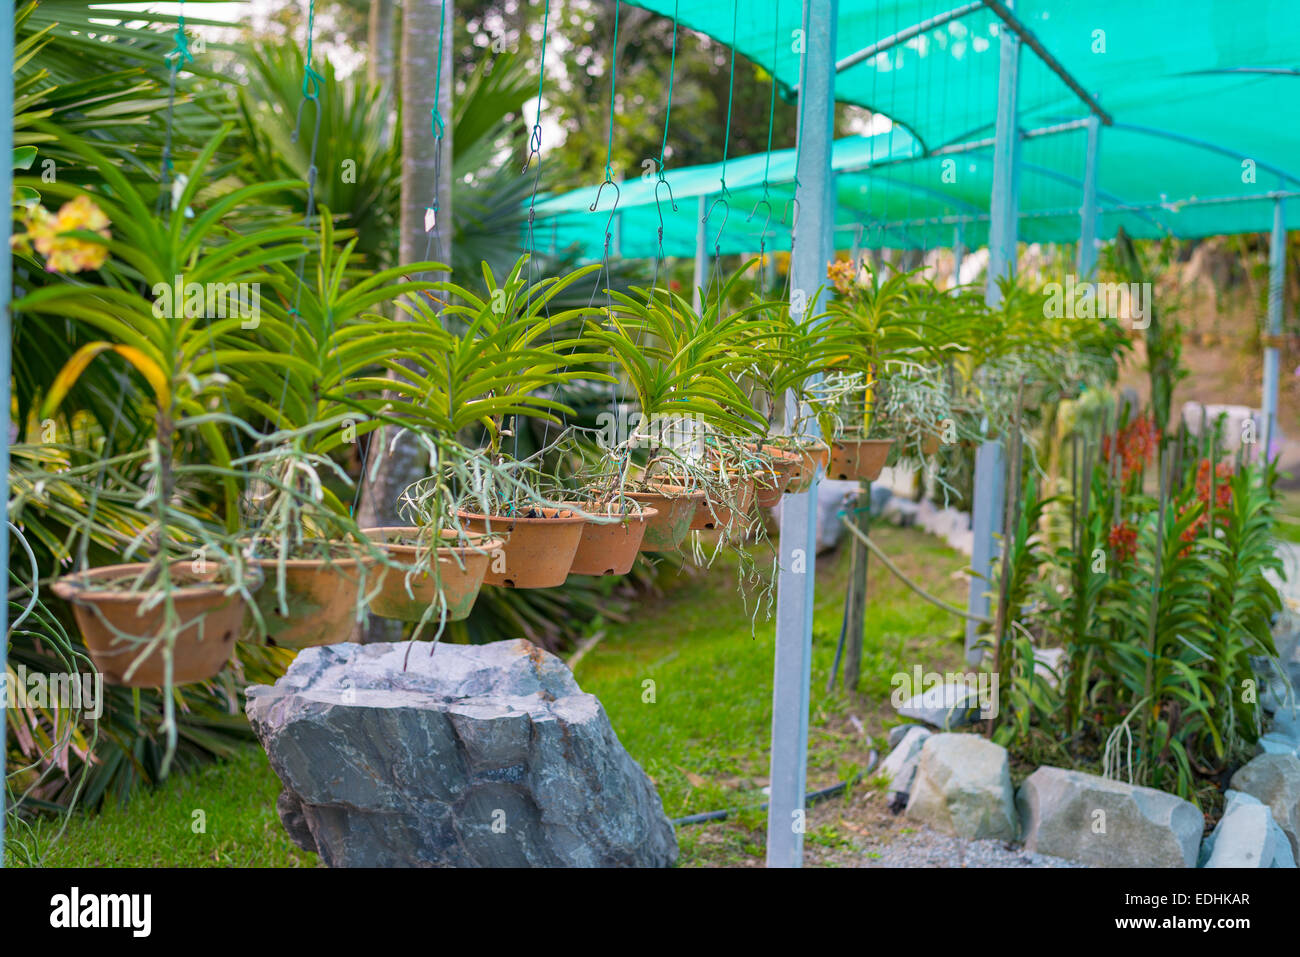 Public Plant Nursery And Garden Center For Tropical Flower And Orchids.  Selective Focus.